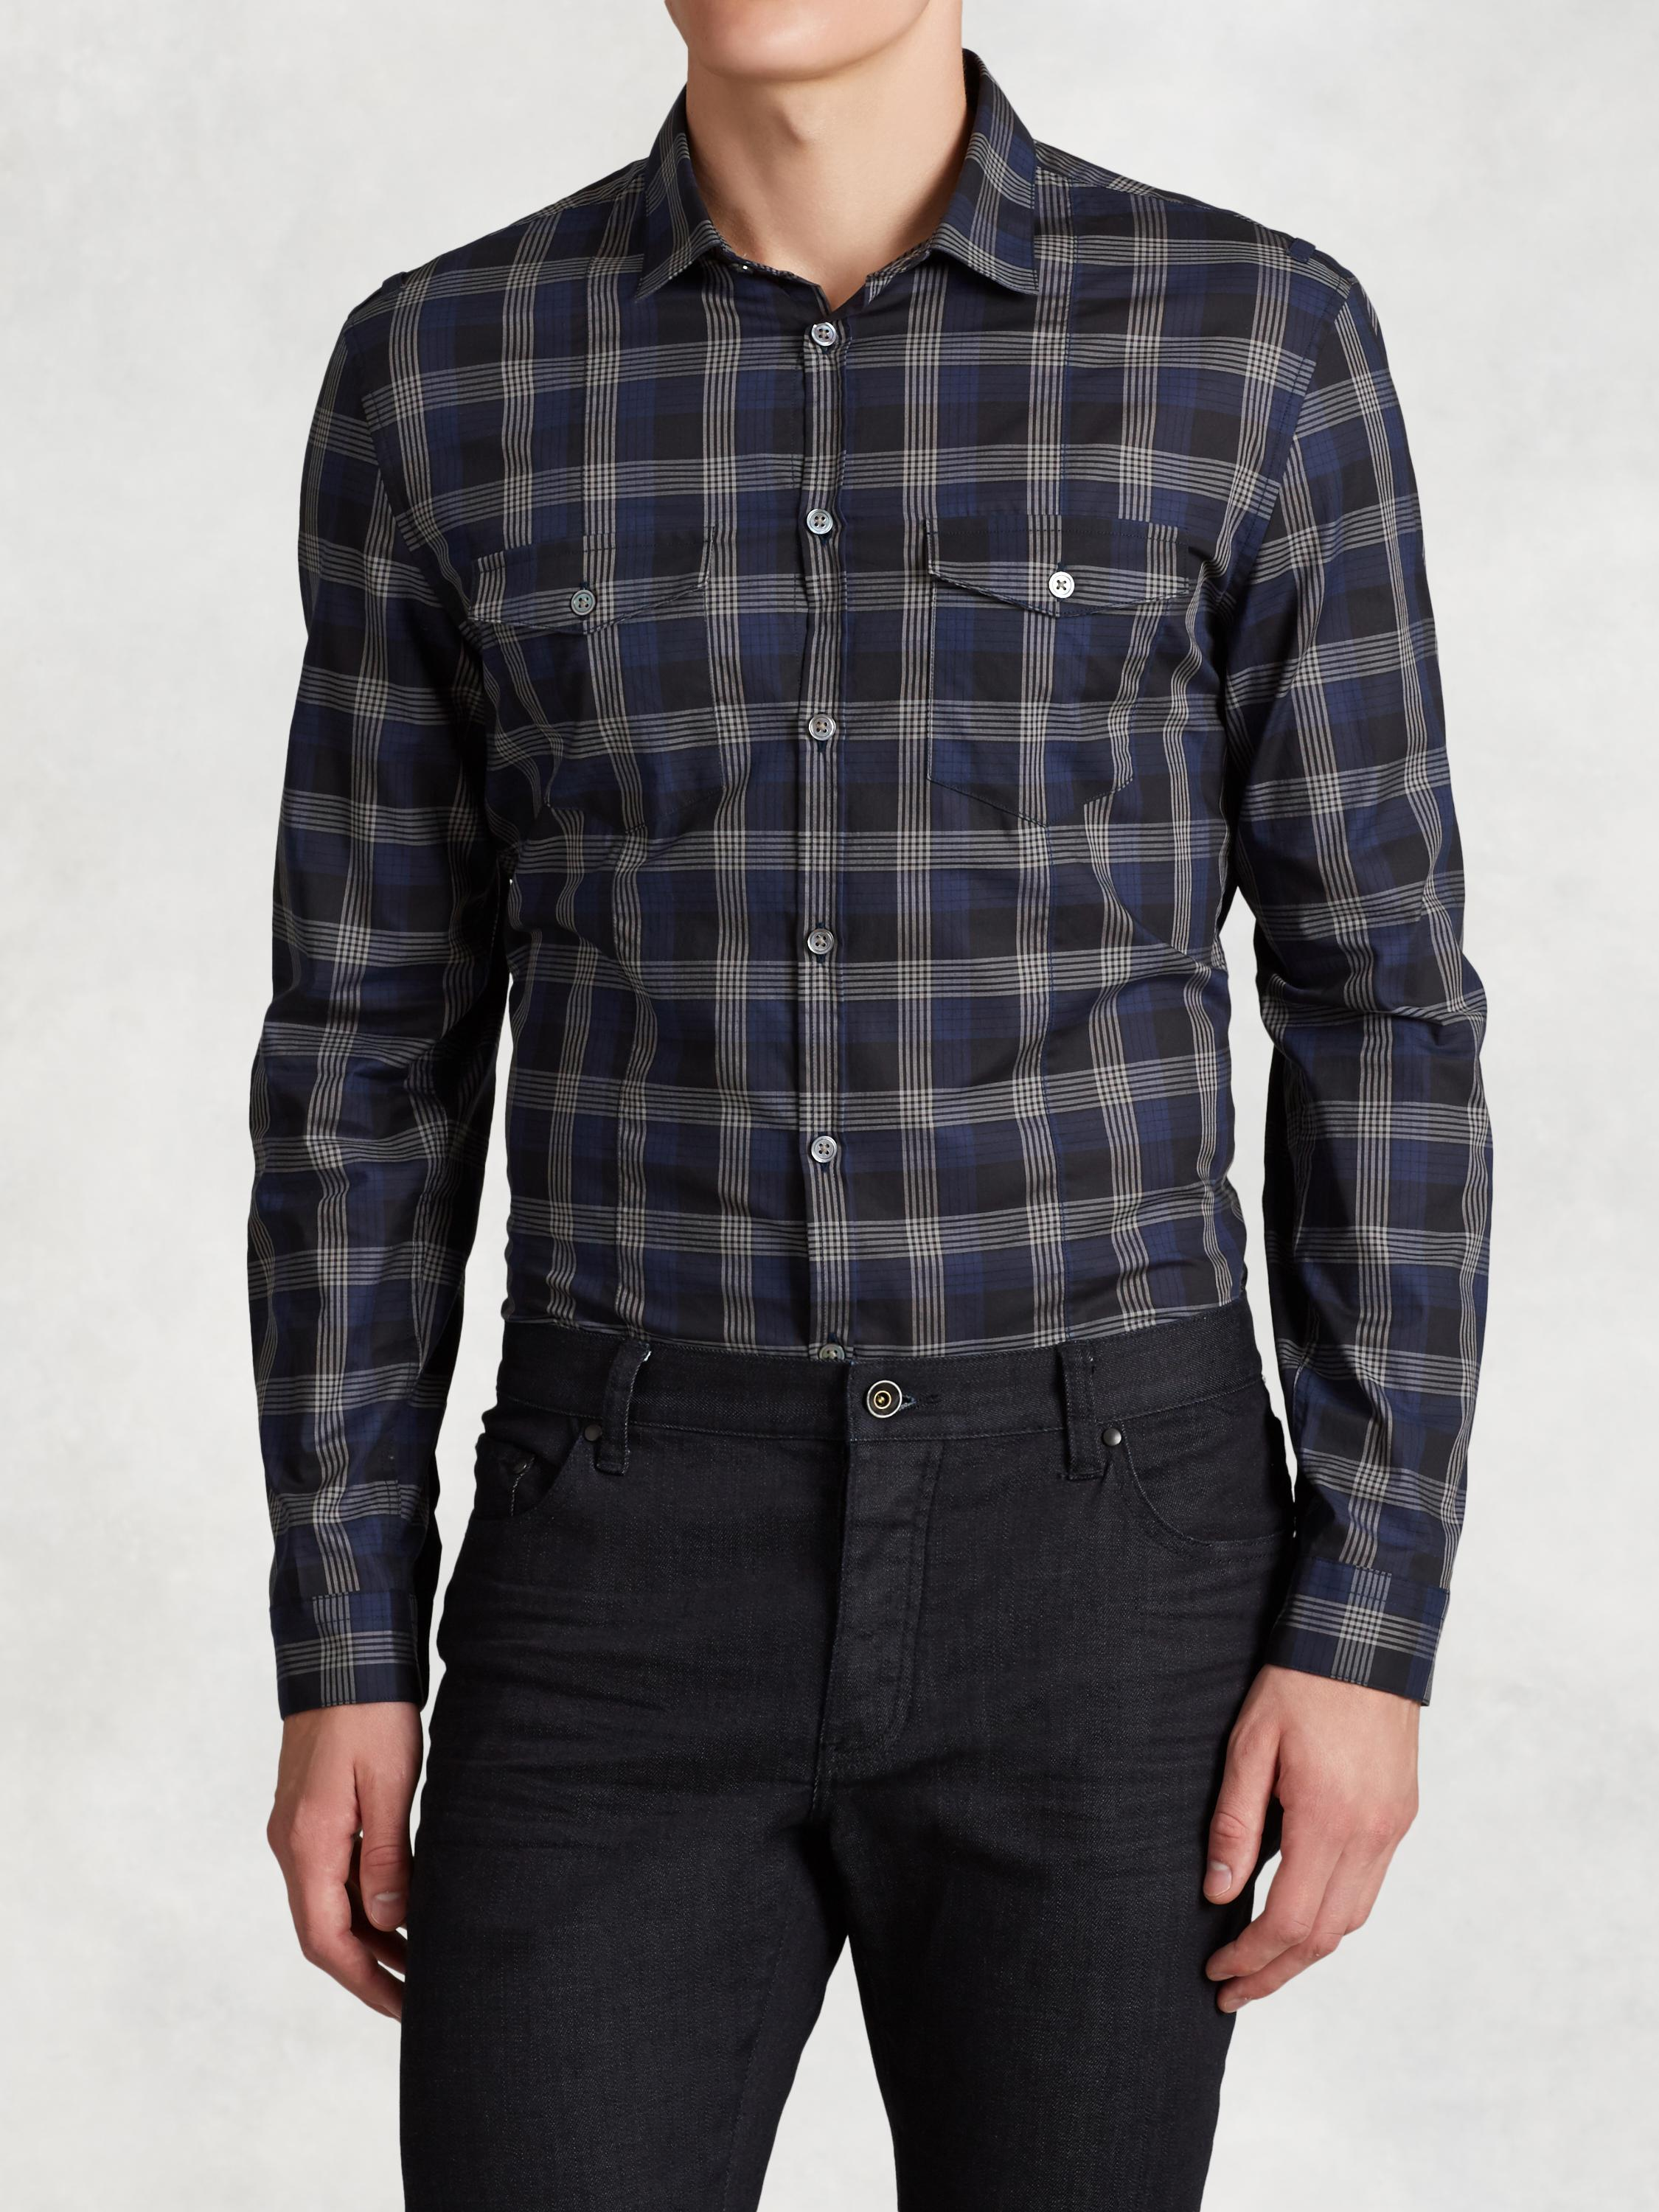 Military Inspired Slim Fit Shirt